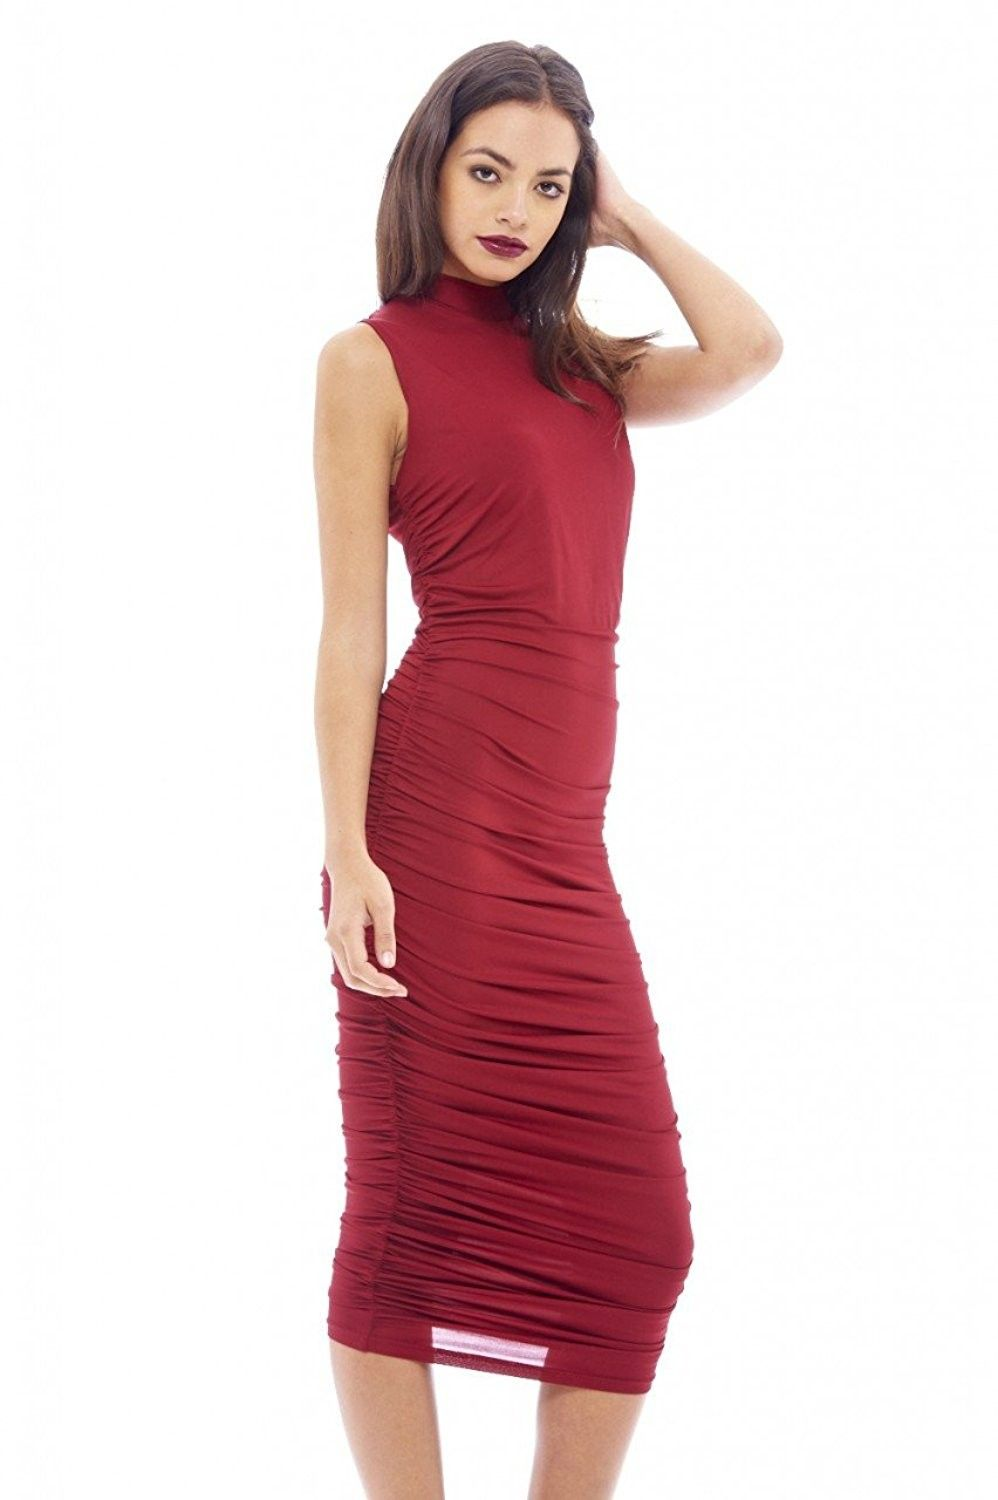 abbba53f46a1 AX Paris Women's High Neck Ruched Midi Dress - Wine - CF125PSX4L5,Women's  Clothing, Dresses, Club & Night Out #women #fashion #clothing #style #sexy  ...